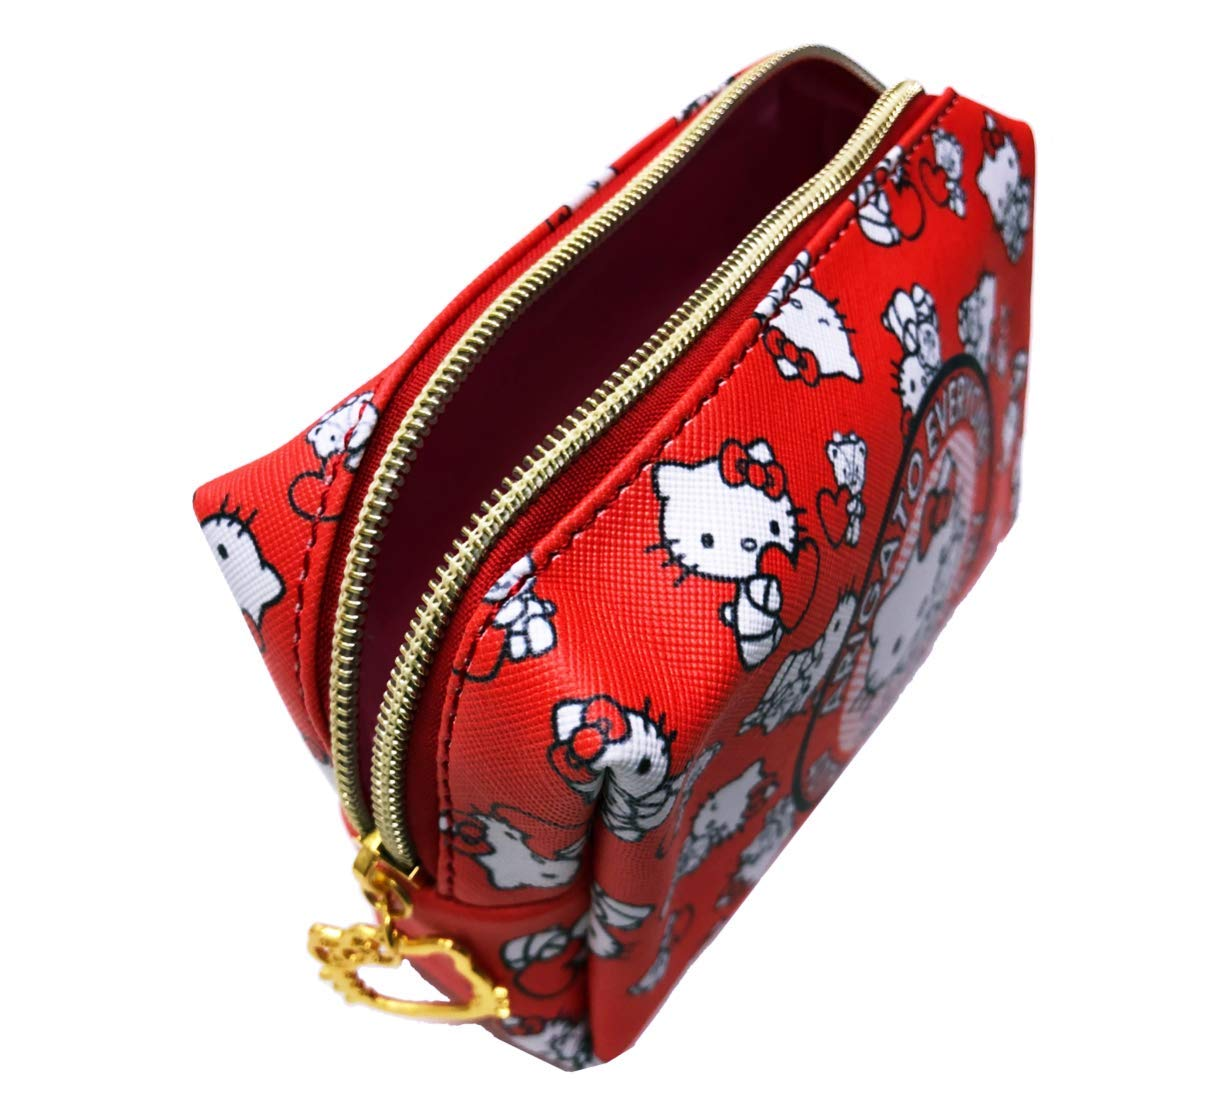 Hello Kitty Makeup Bag, Perfect Cosmetic Bag for Travel, Brushes, and Accessories, Great gifts for her,...